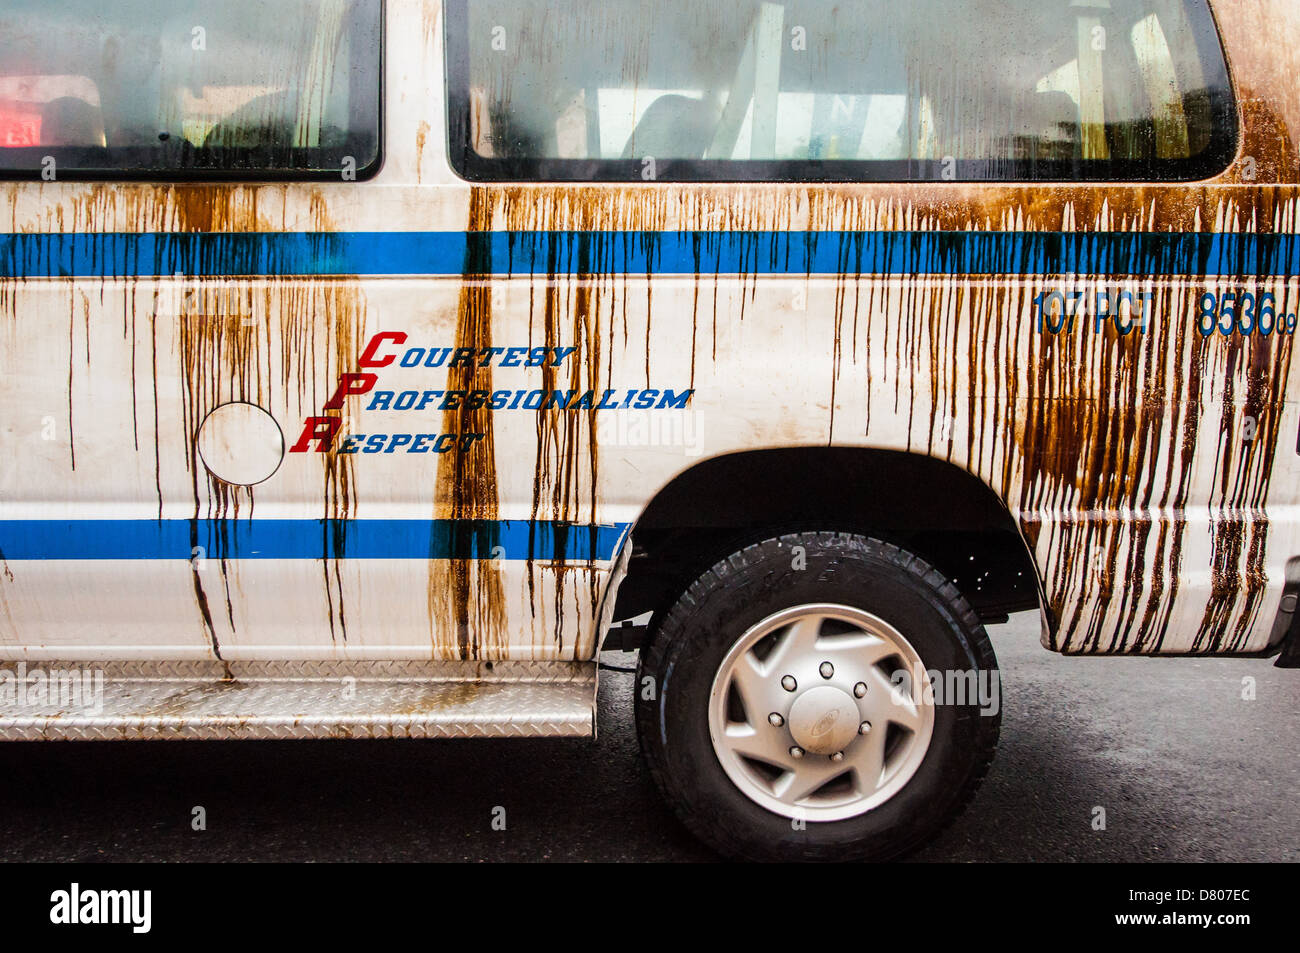 Motor oil splashed on a NYPD van at J'ouvert, Brooklyn, 2012 - Stock Image